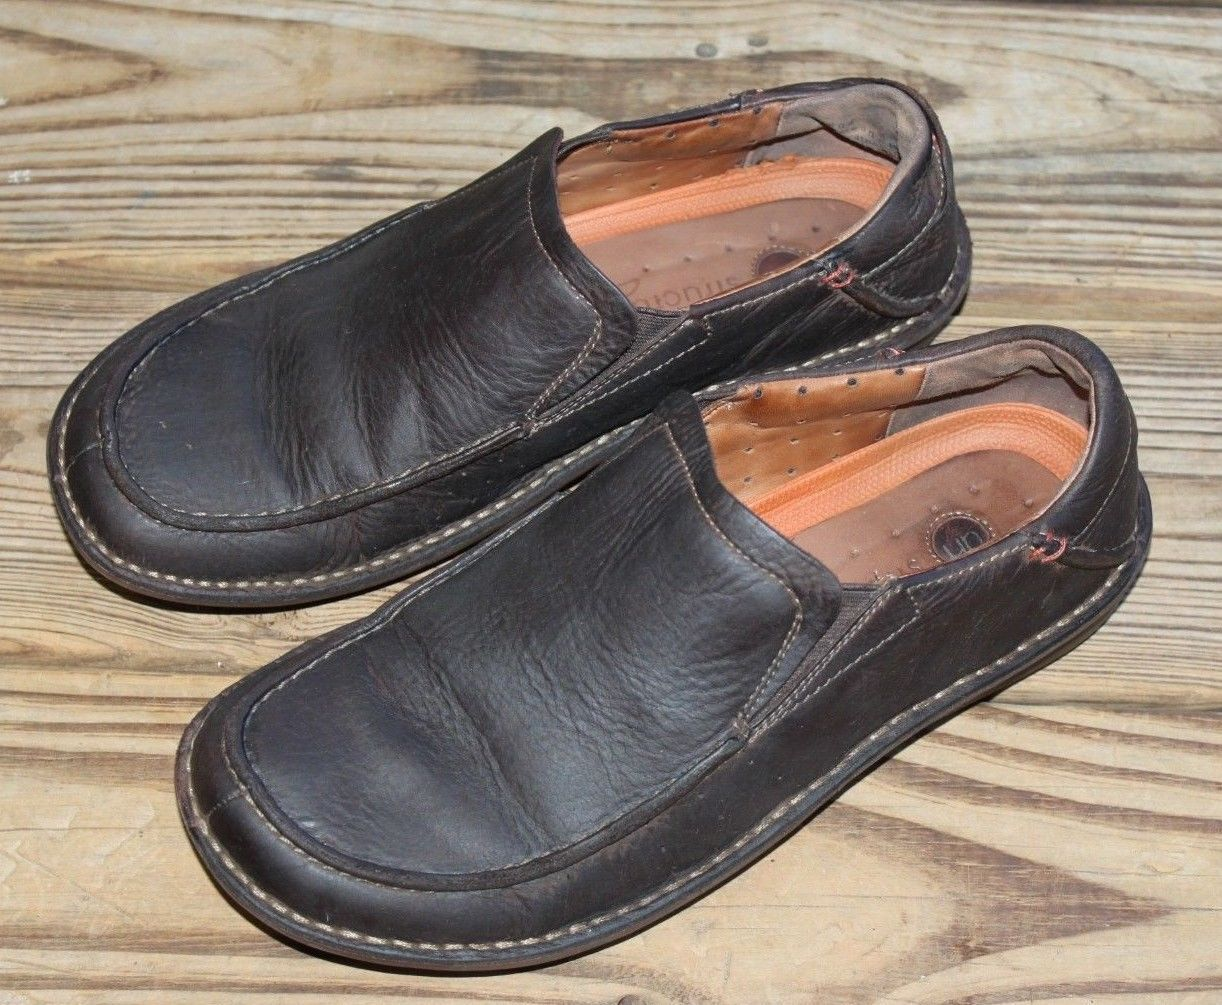 Clarks Size 9 M Structured Shoes Brown Leather Upper Slip On Comfort Men's